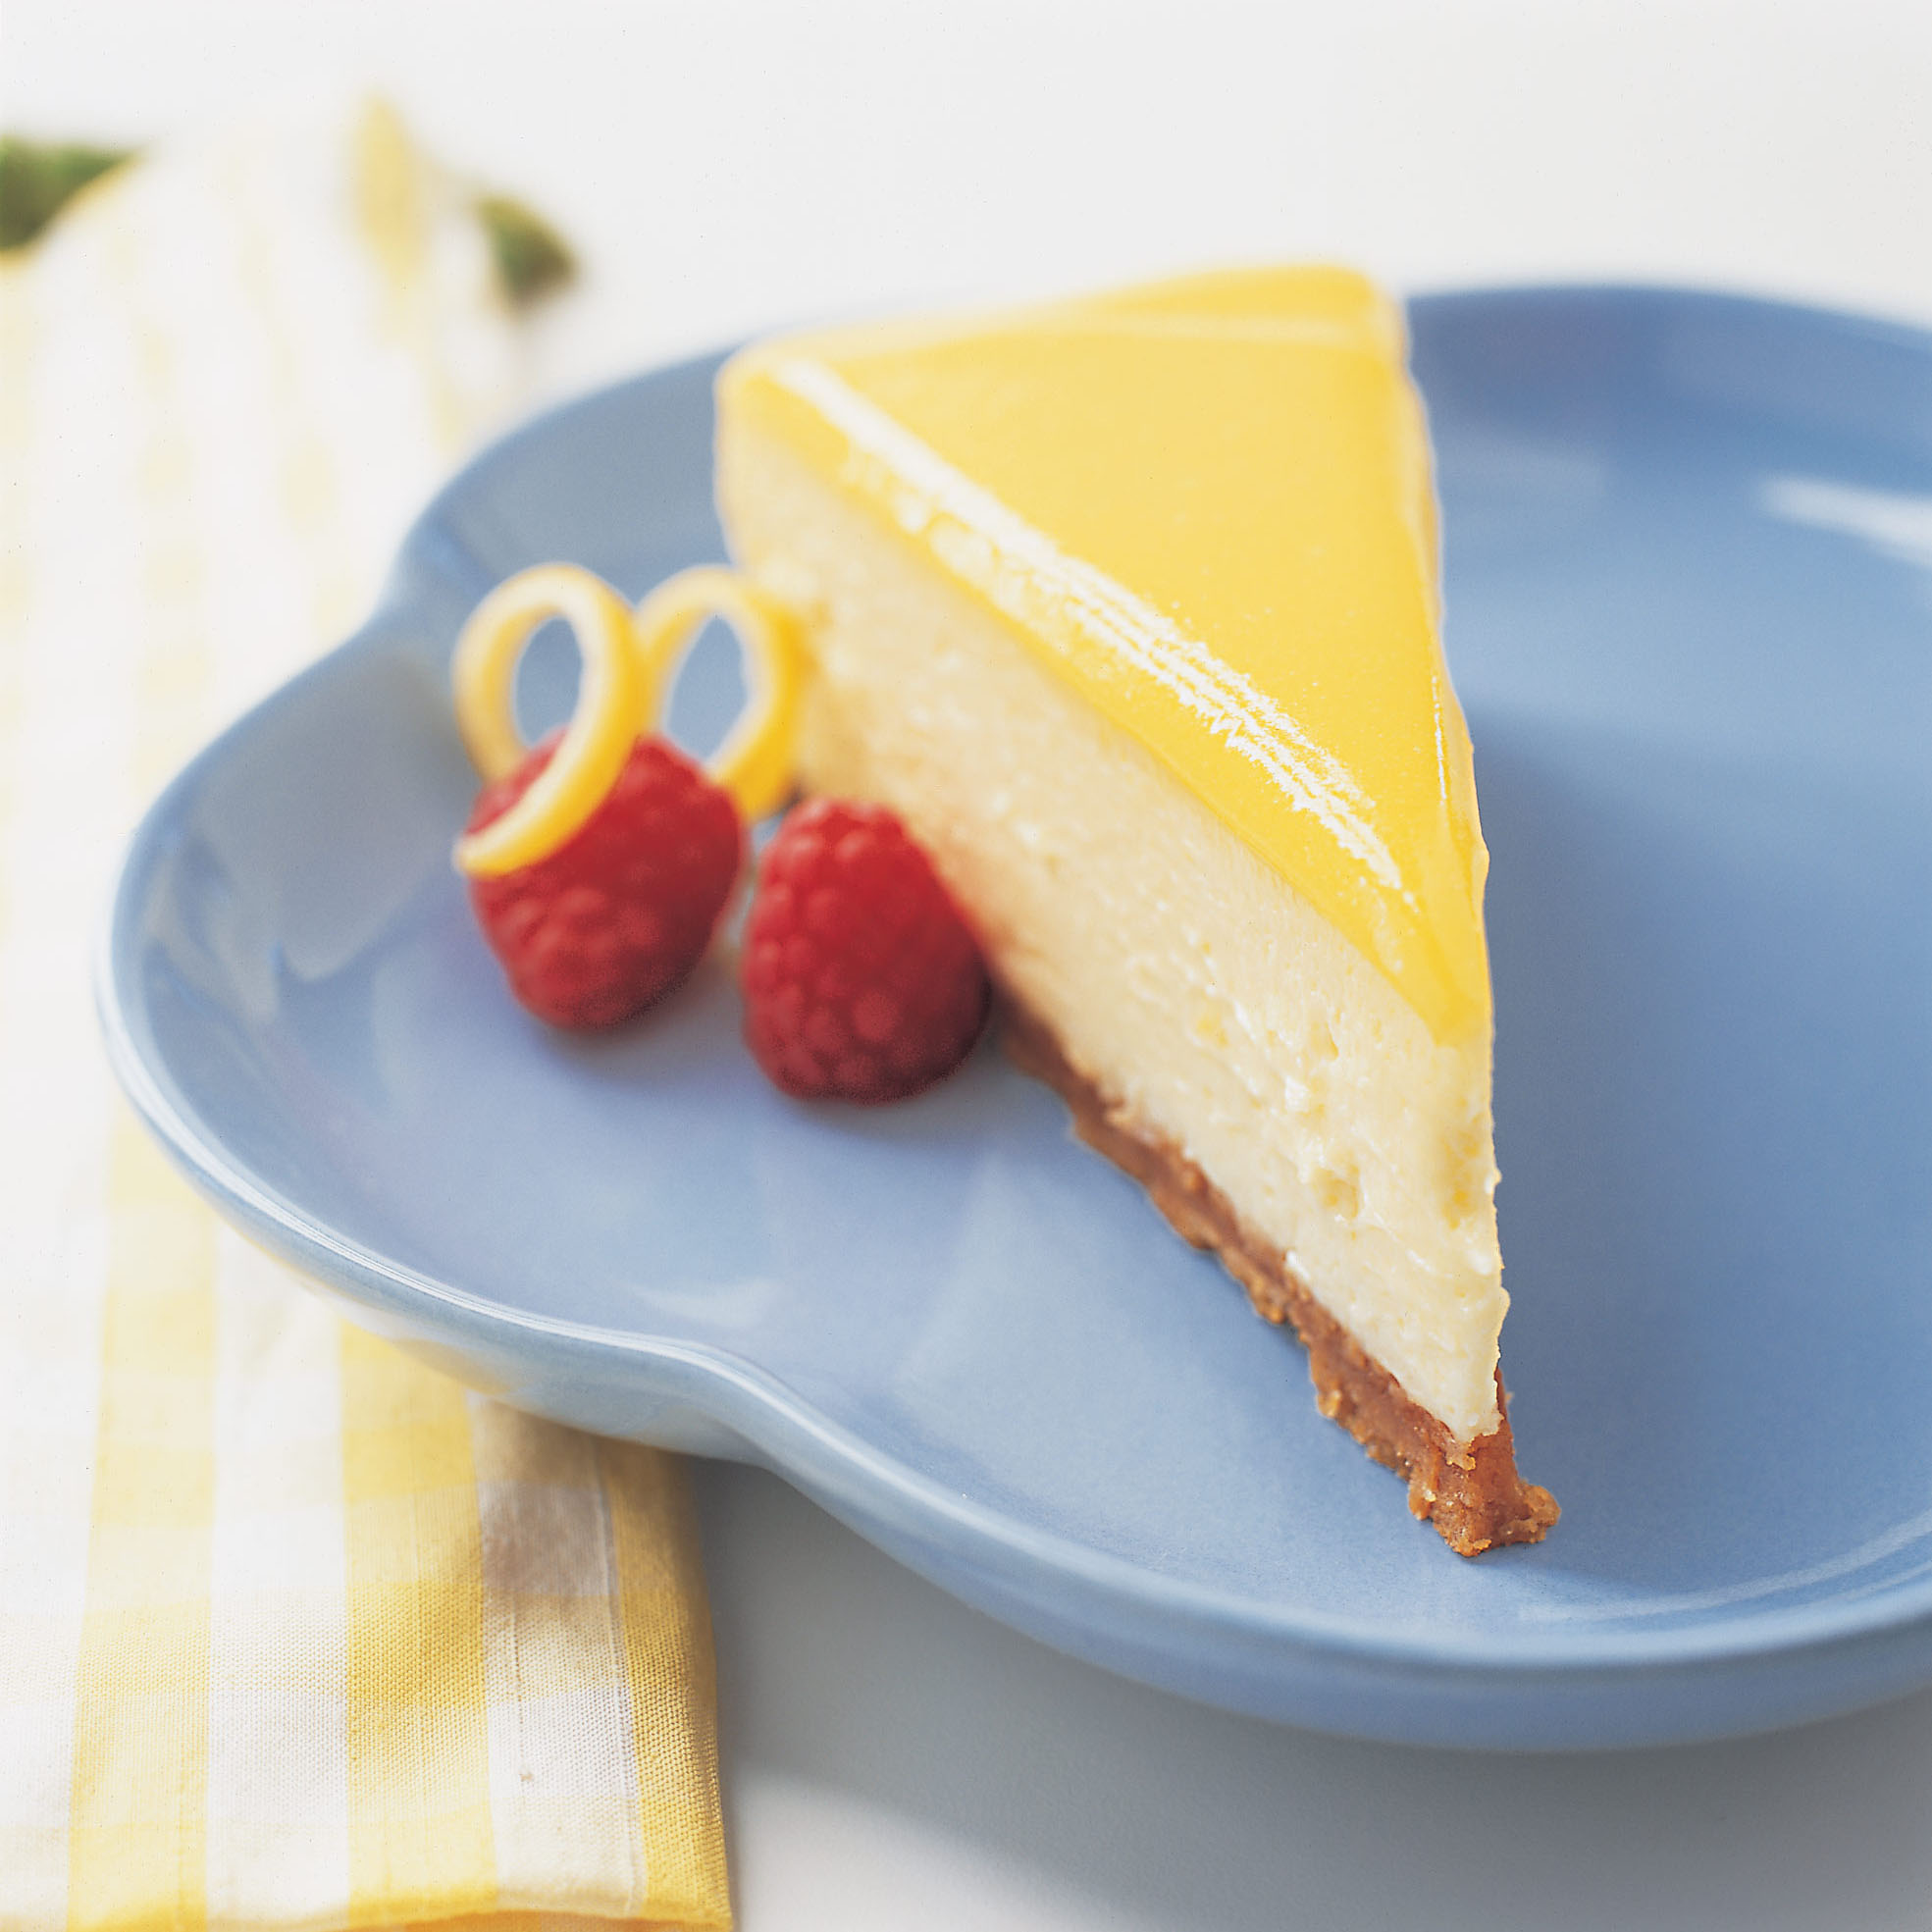 Lemon Cheesecake Recipe - Cook's Illustrated